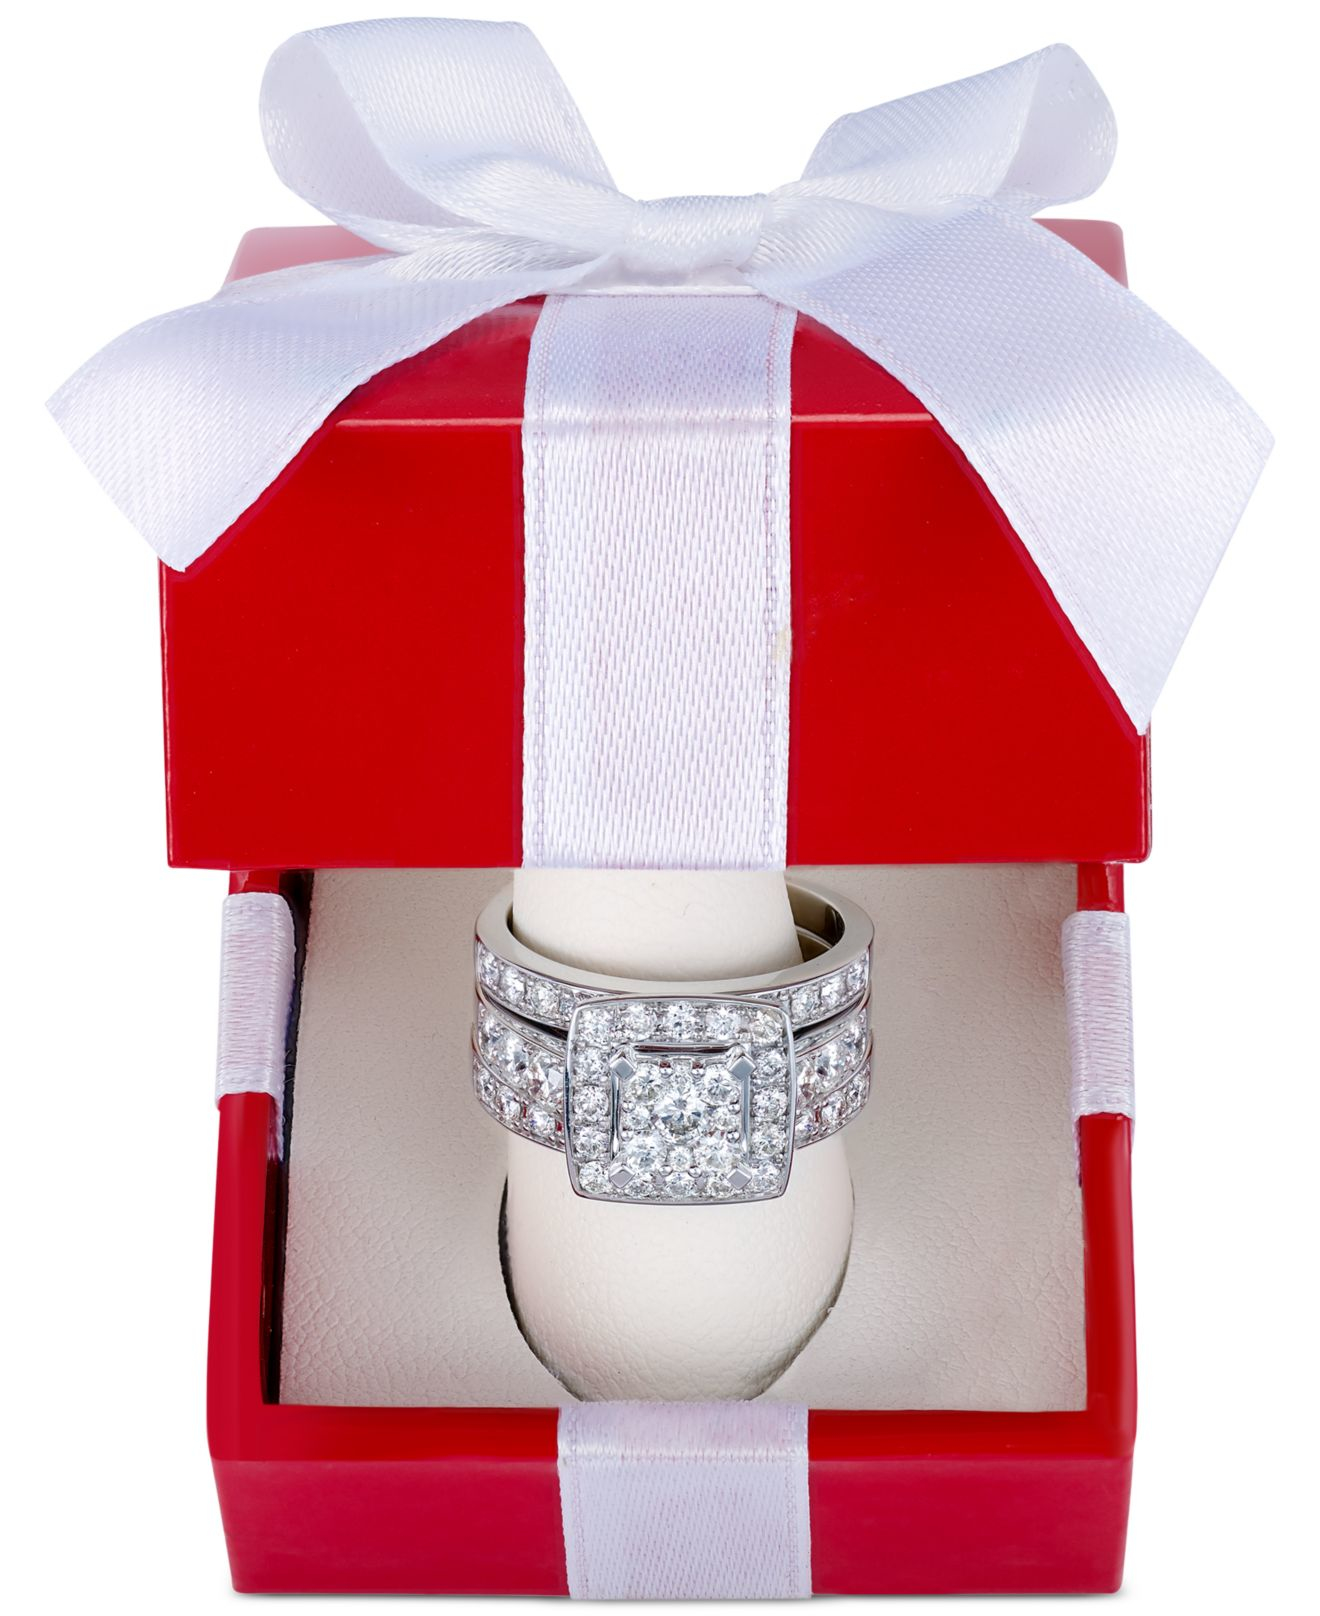 Macy s Diamond Engagement Bridal Set 2 Ct T w In 14k White Gold in Me